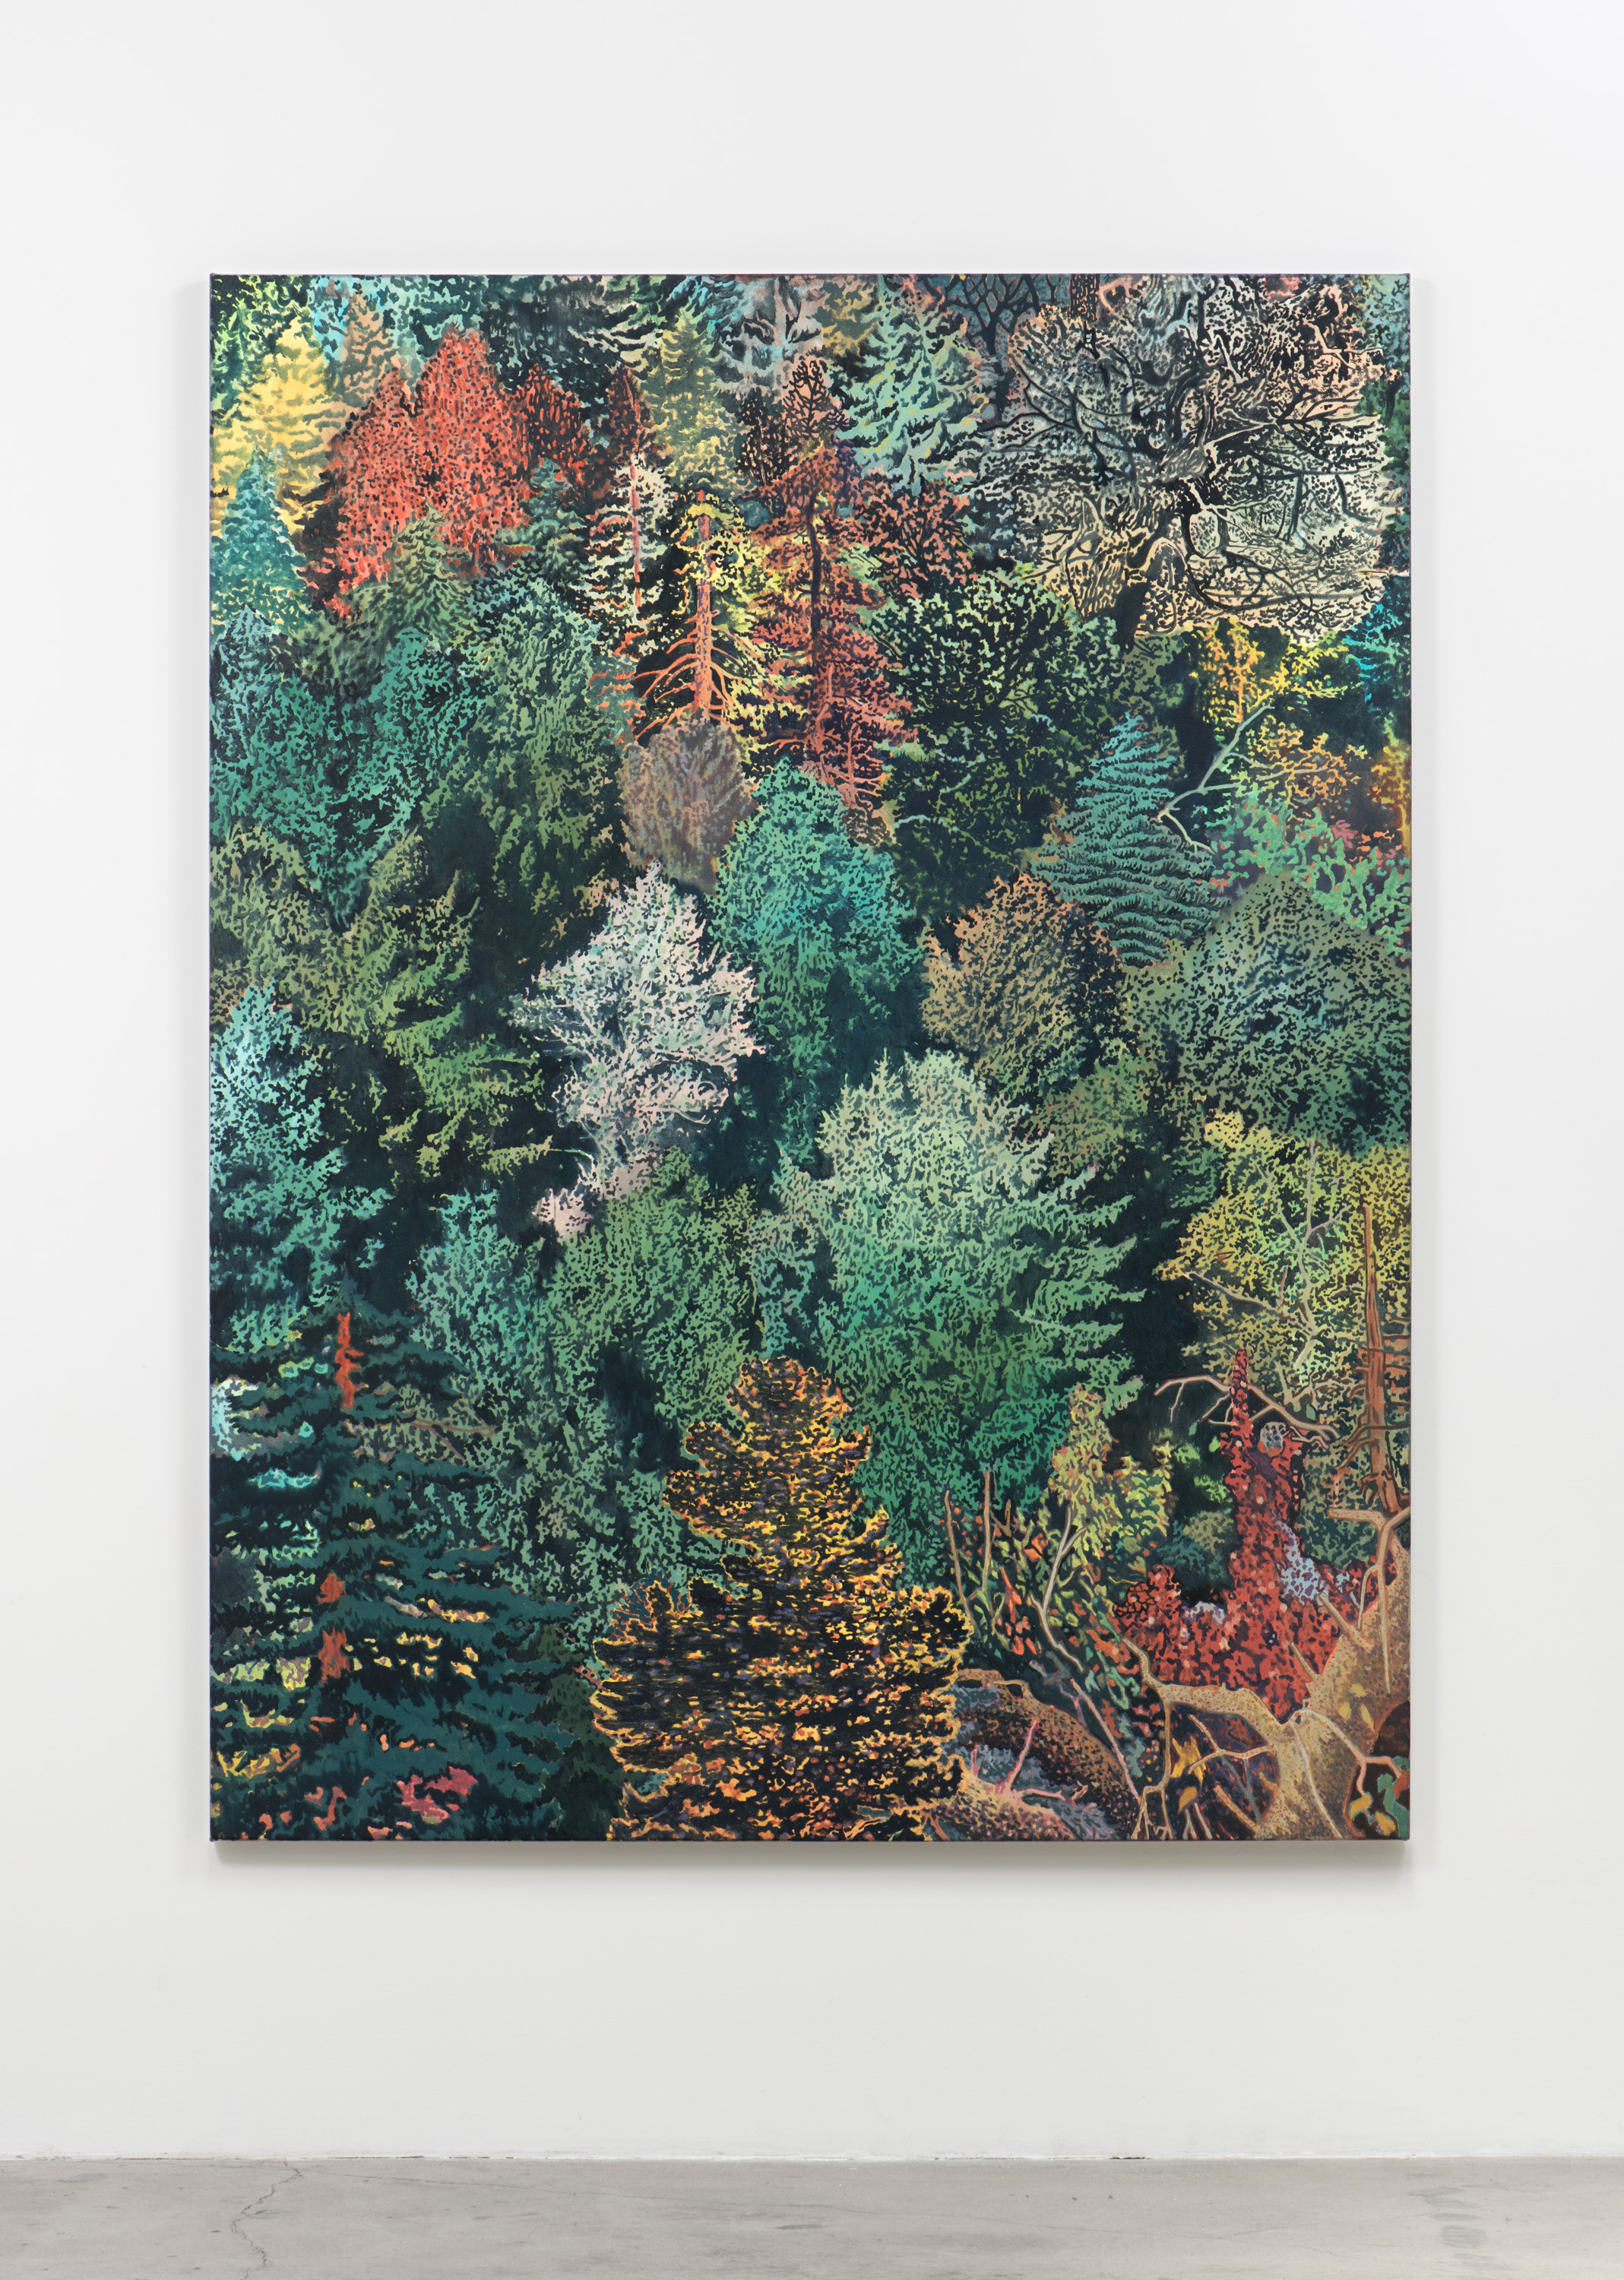 Aaron Morse  Wilderness , 2017 Acrylic on canvas 78 x 60 inches